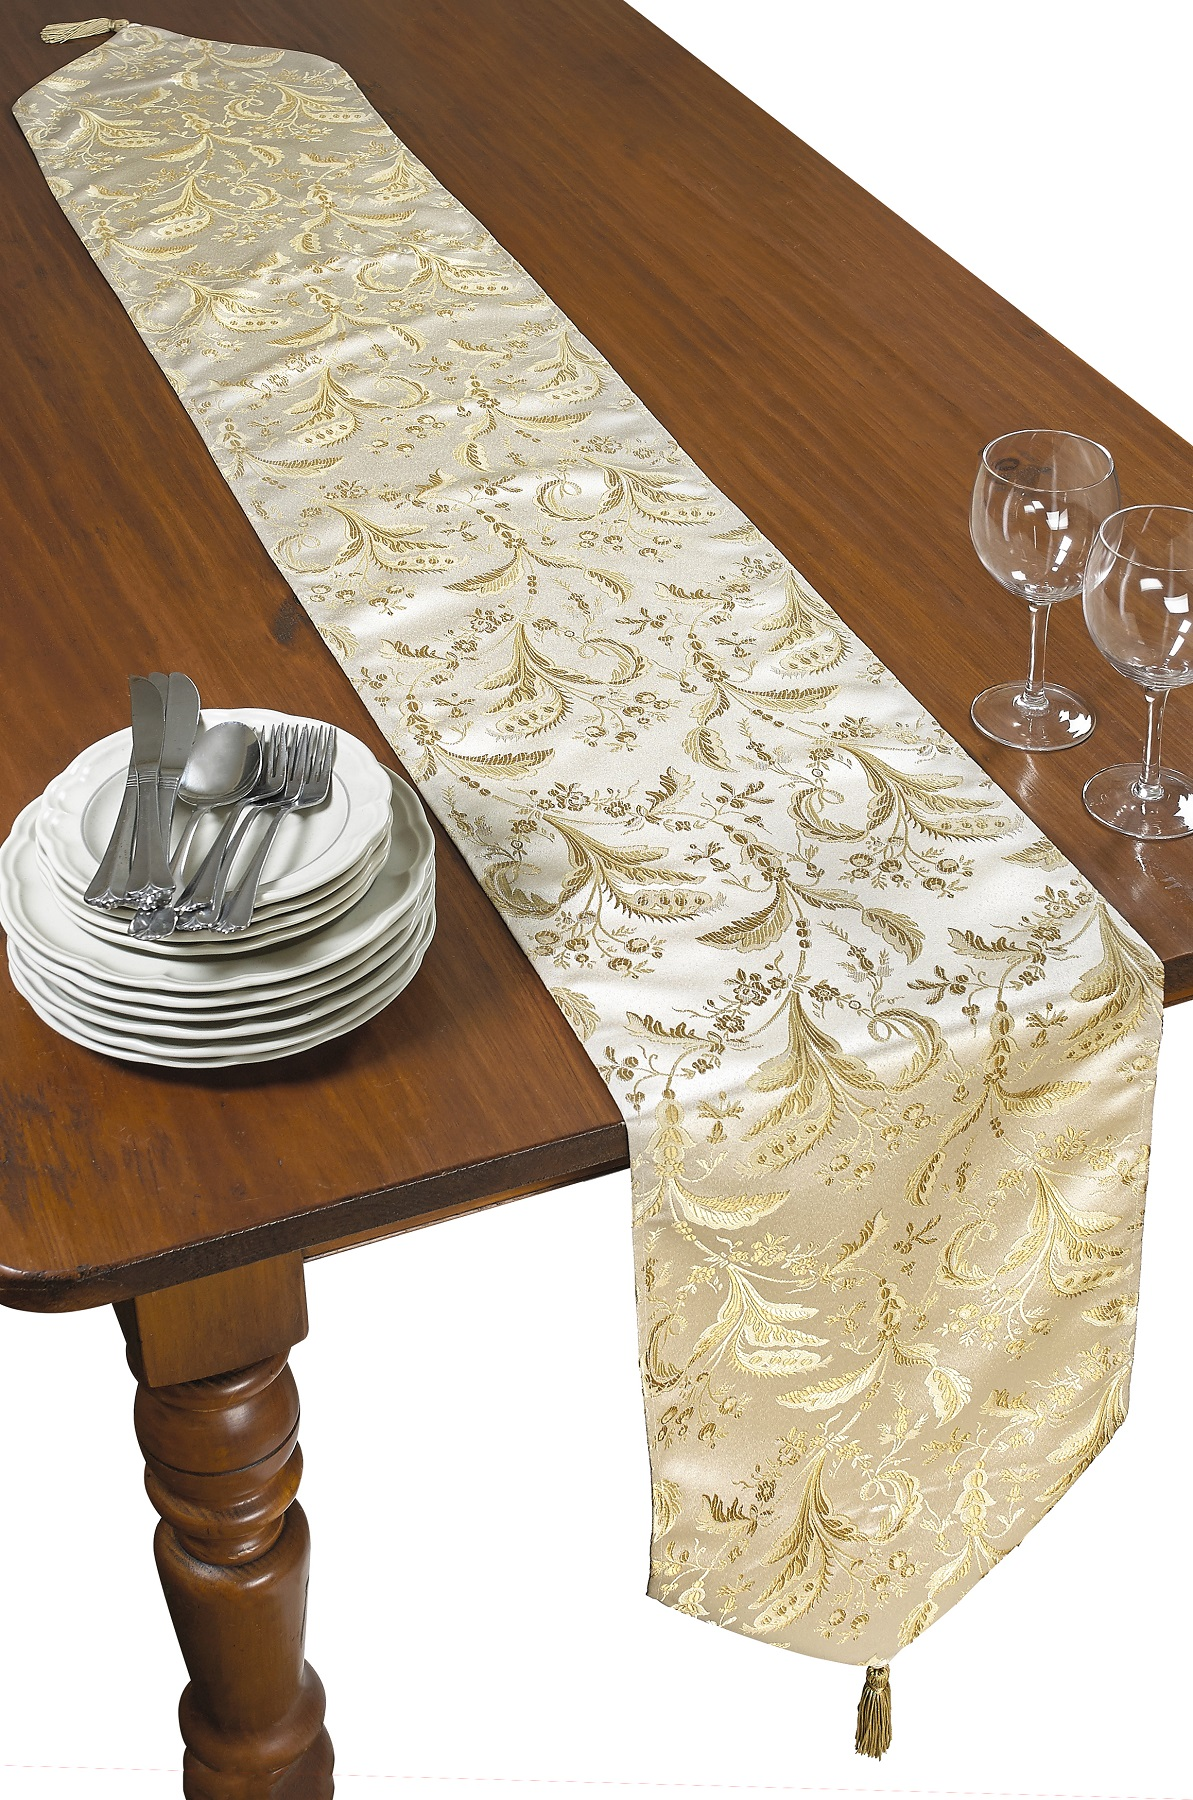 honey jute runner table products rug the tr tablerunners vanilla placemats runners falltablescape place braided ginger